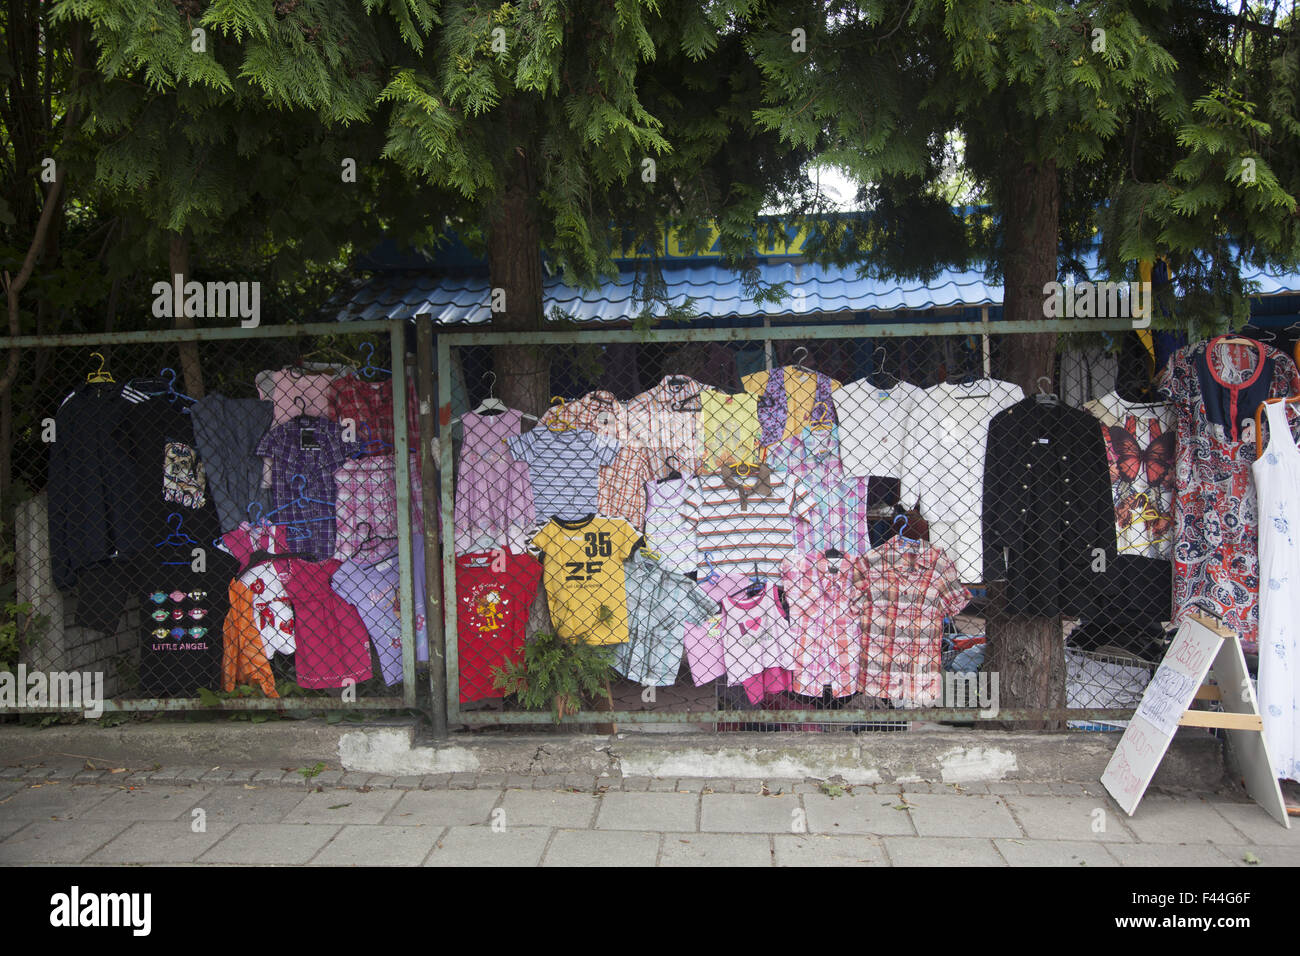 Used clothing vendor on the street in Zielona Gora, Poland. - Stock Image